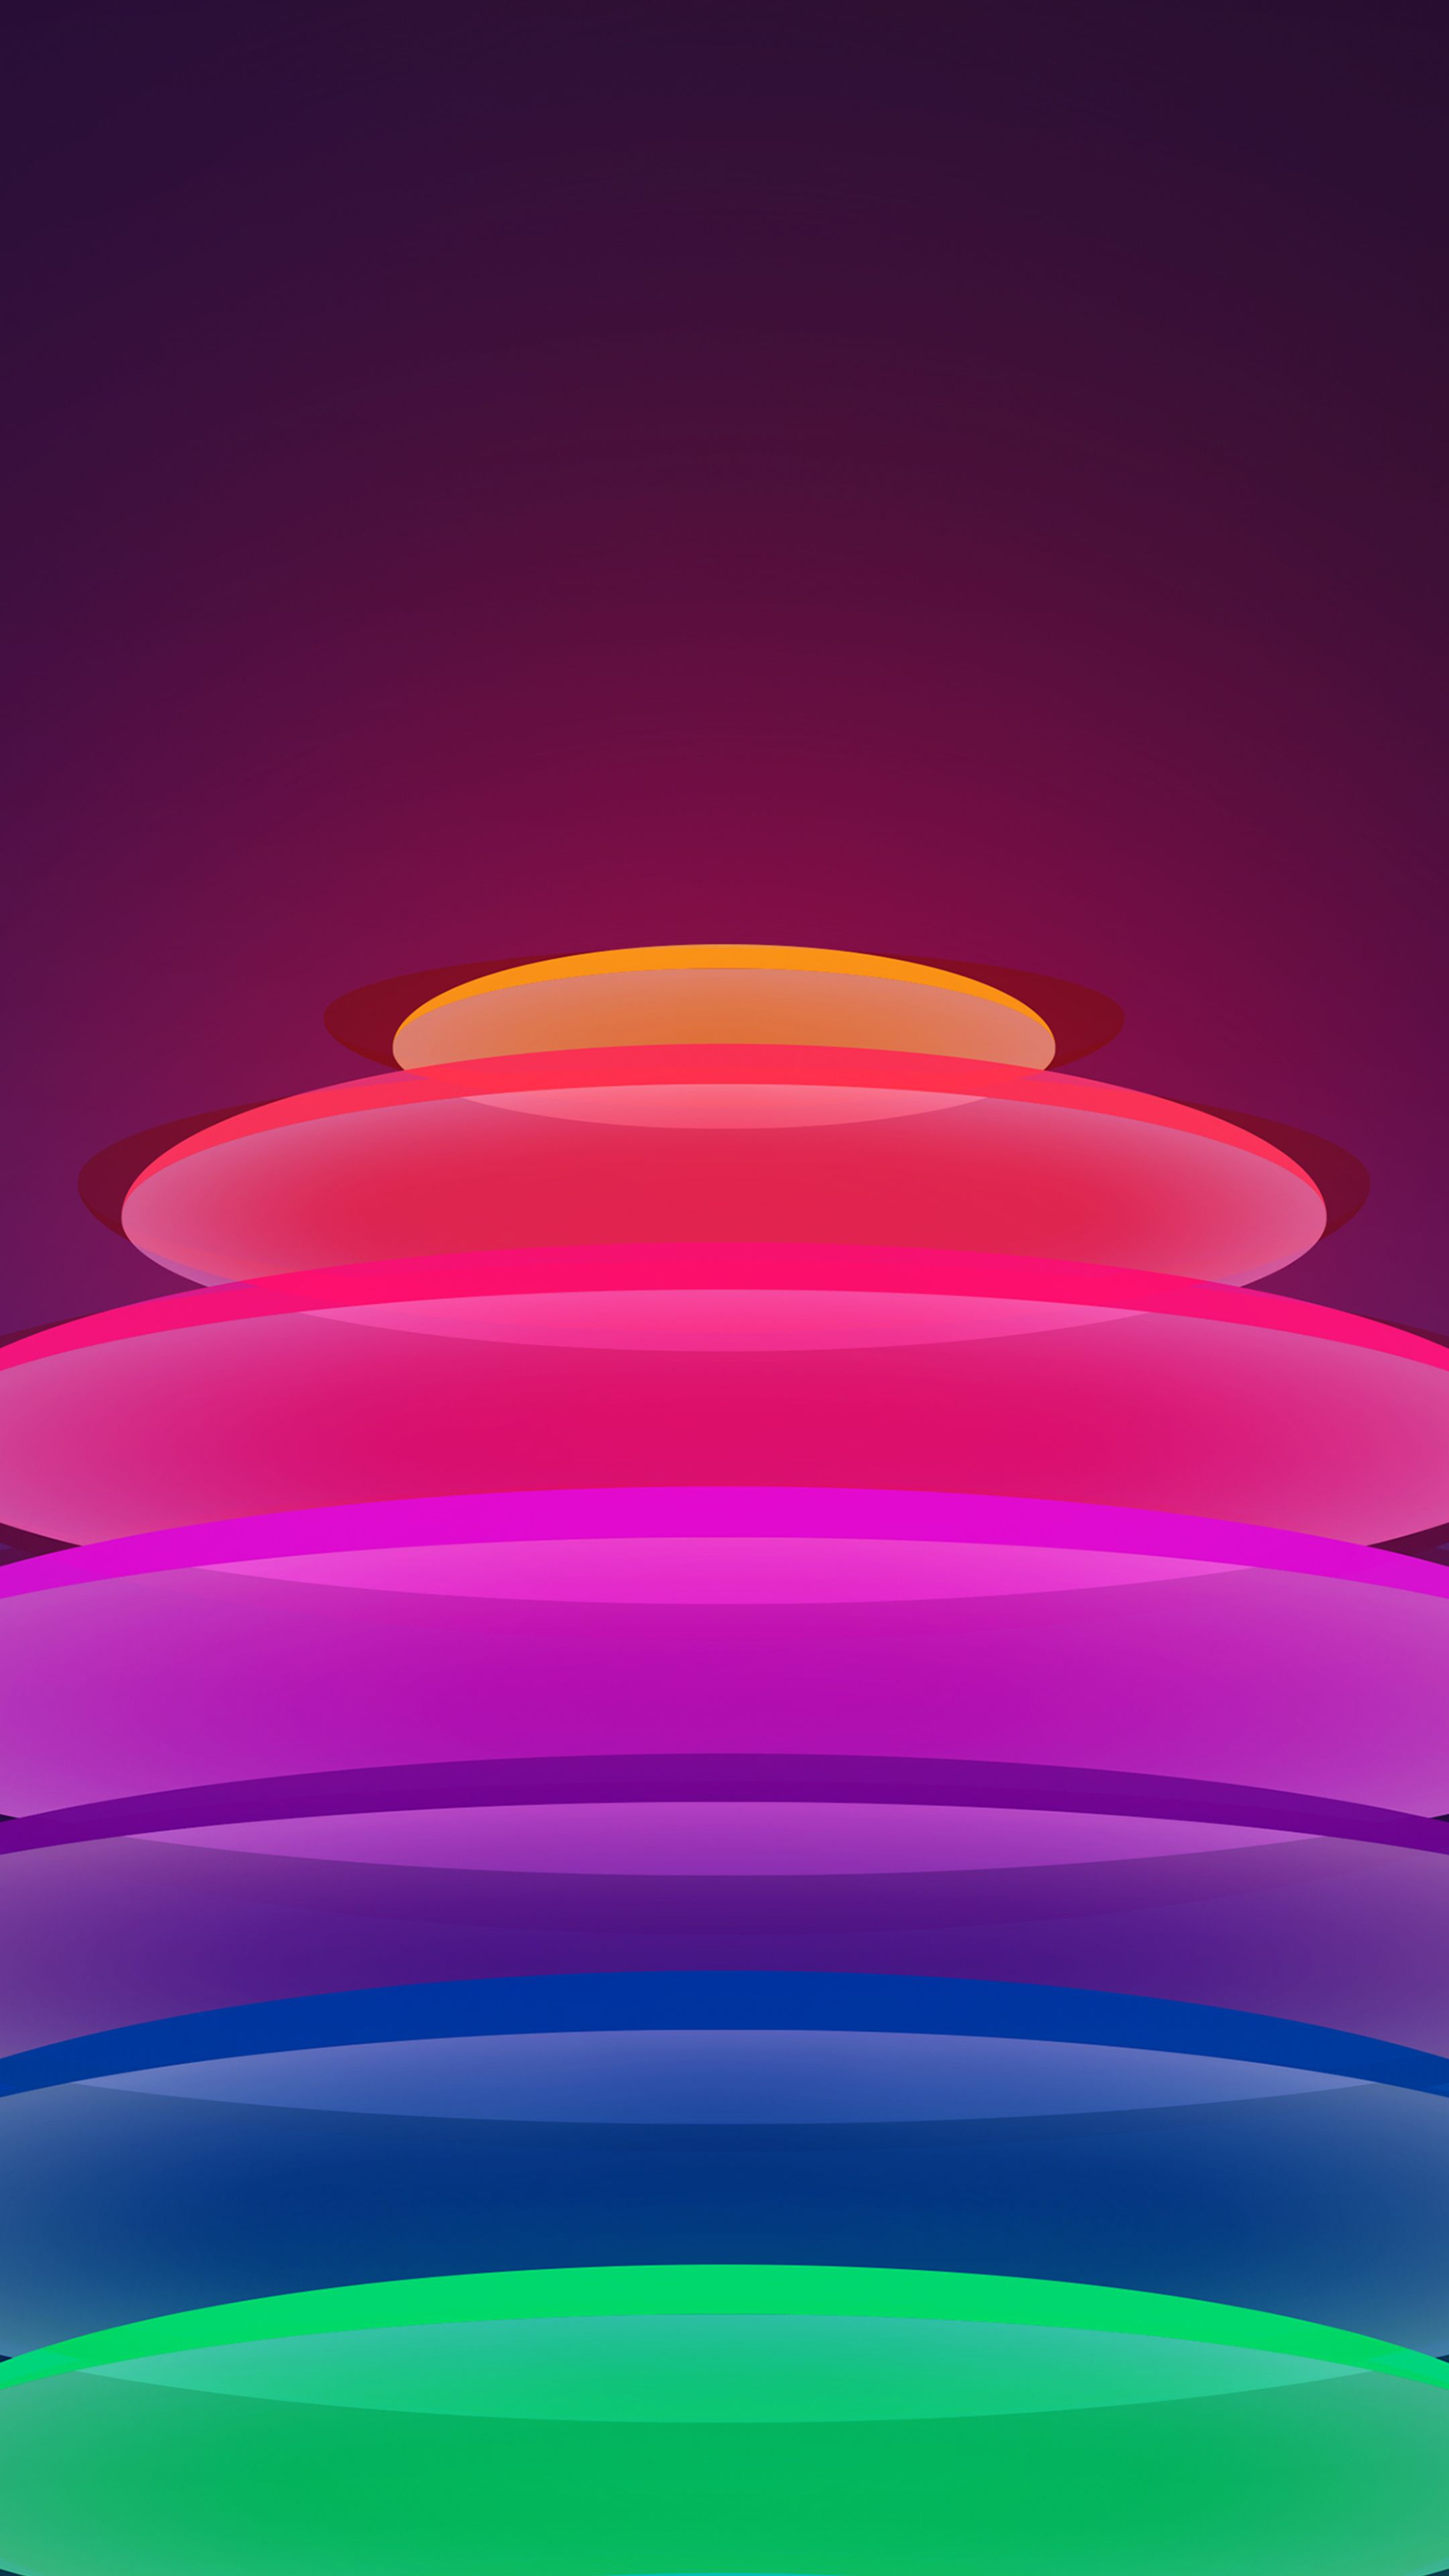 Shape Abstract 4k In 2160x3840 Resolution Abstract Iphone Wallpaper Abstract Wallpaper Backgrounds Iphone Background Wallpaper